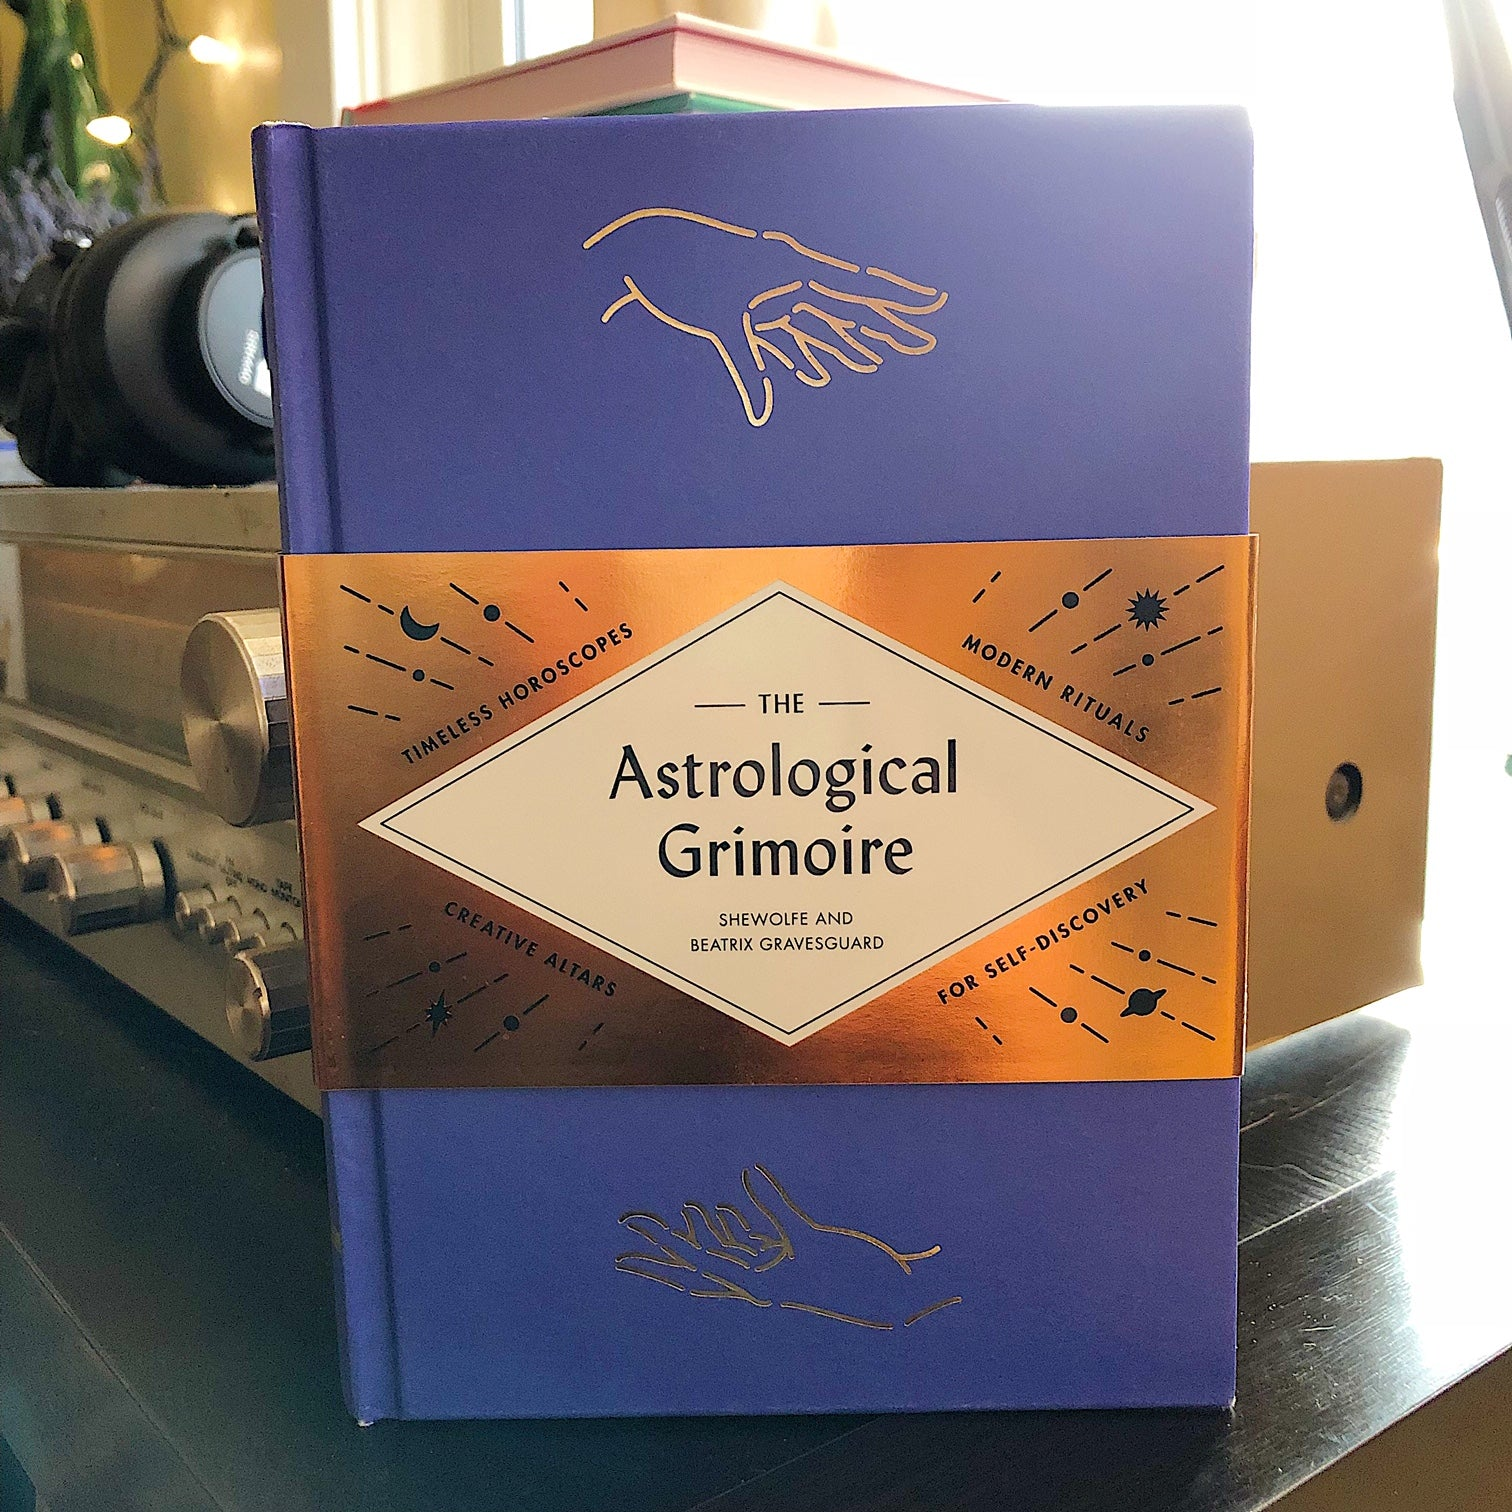 The Astrological Grimoire // By Shewolfe and Beatrix Gravesguard